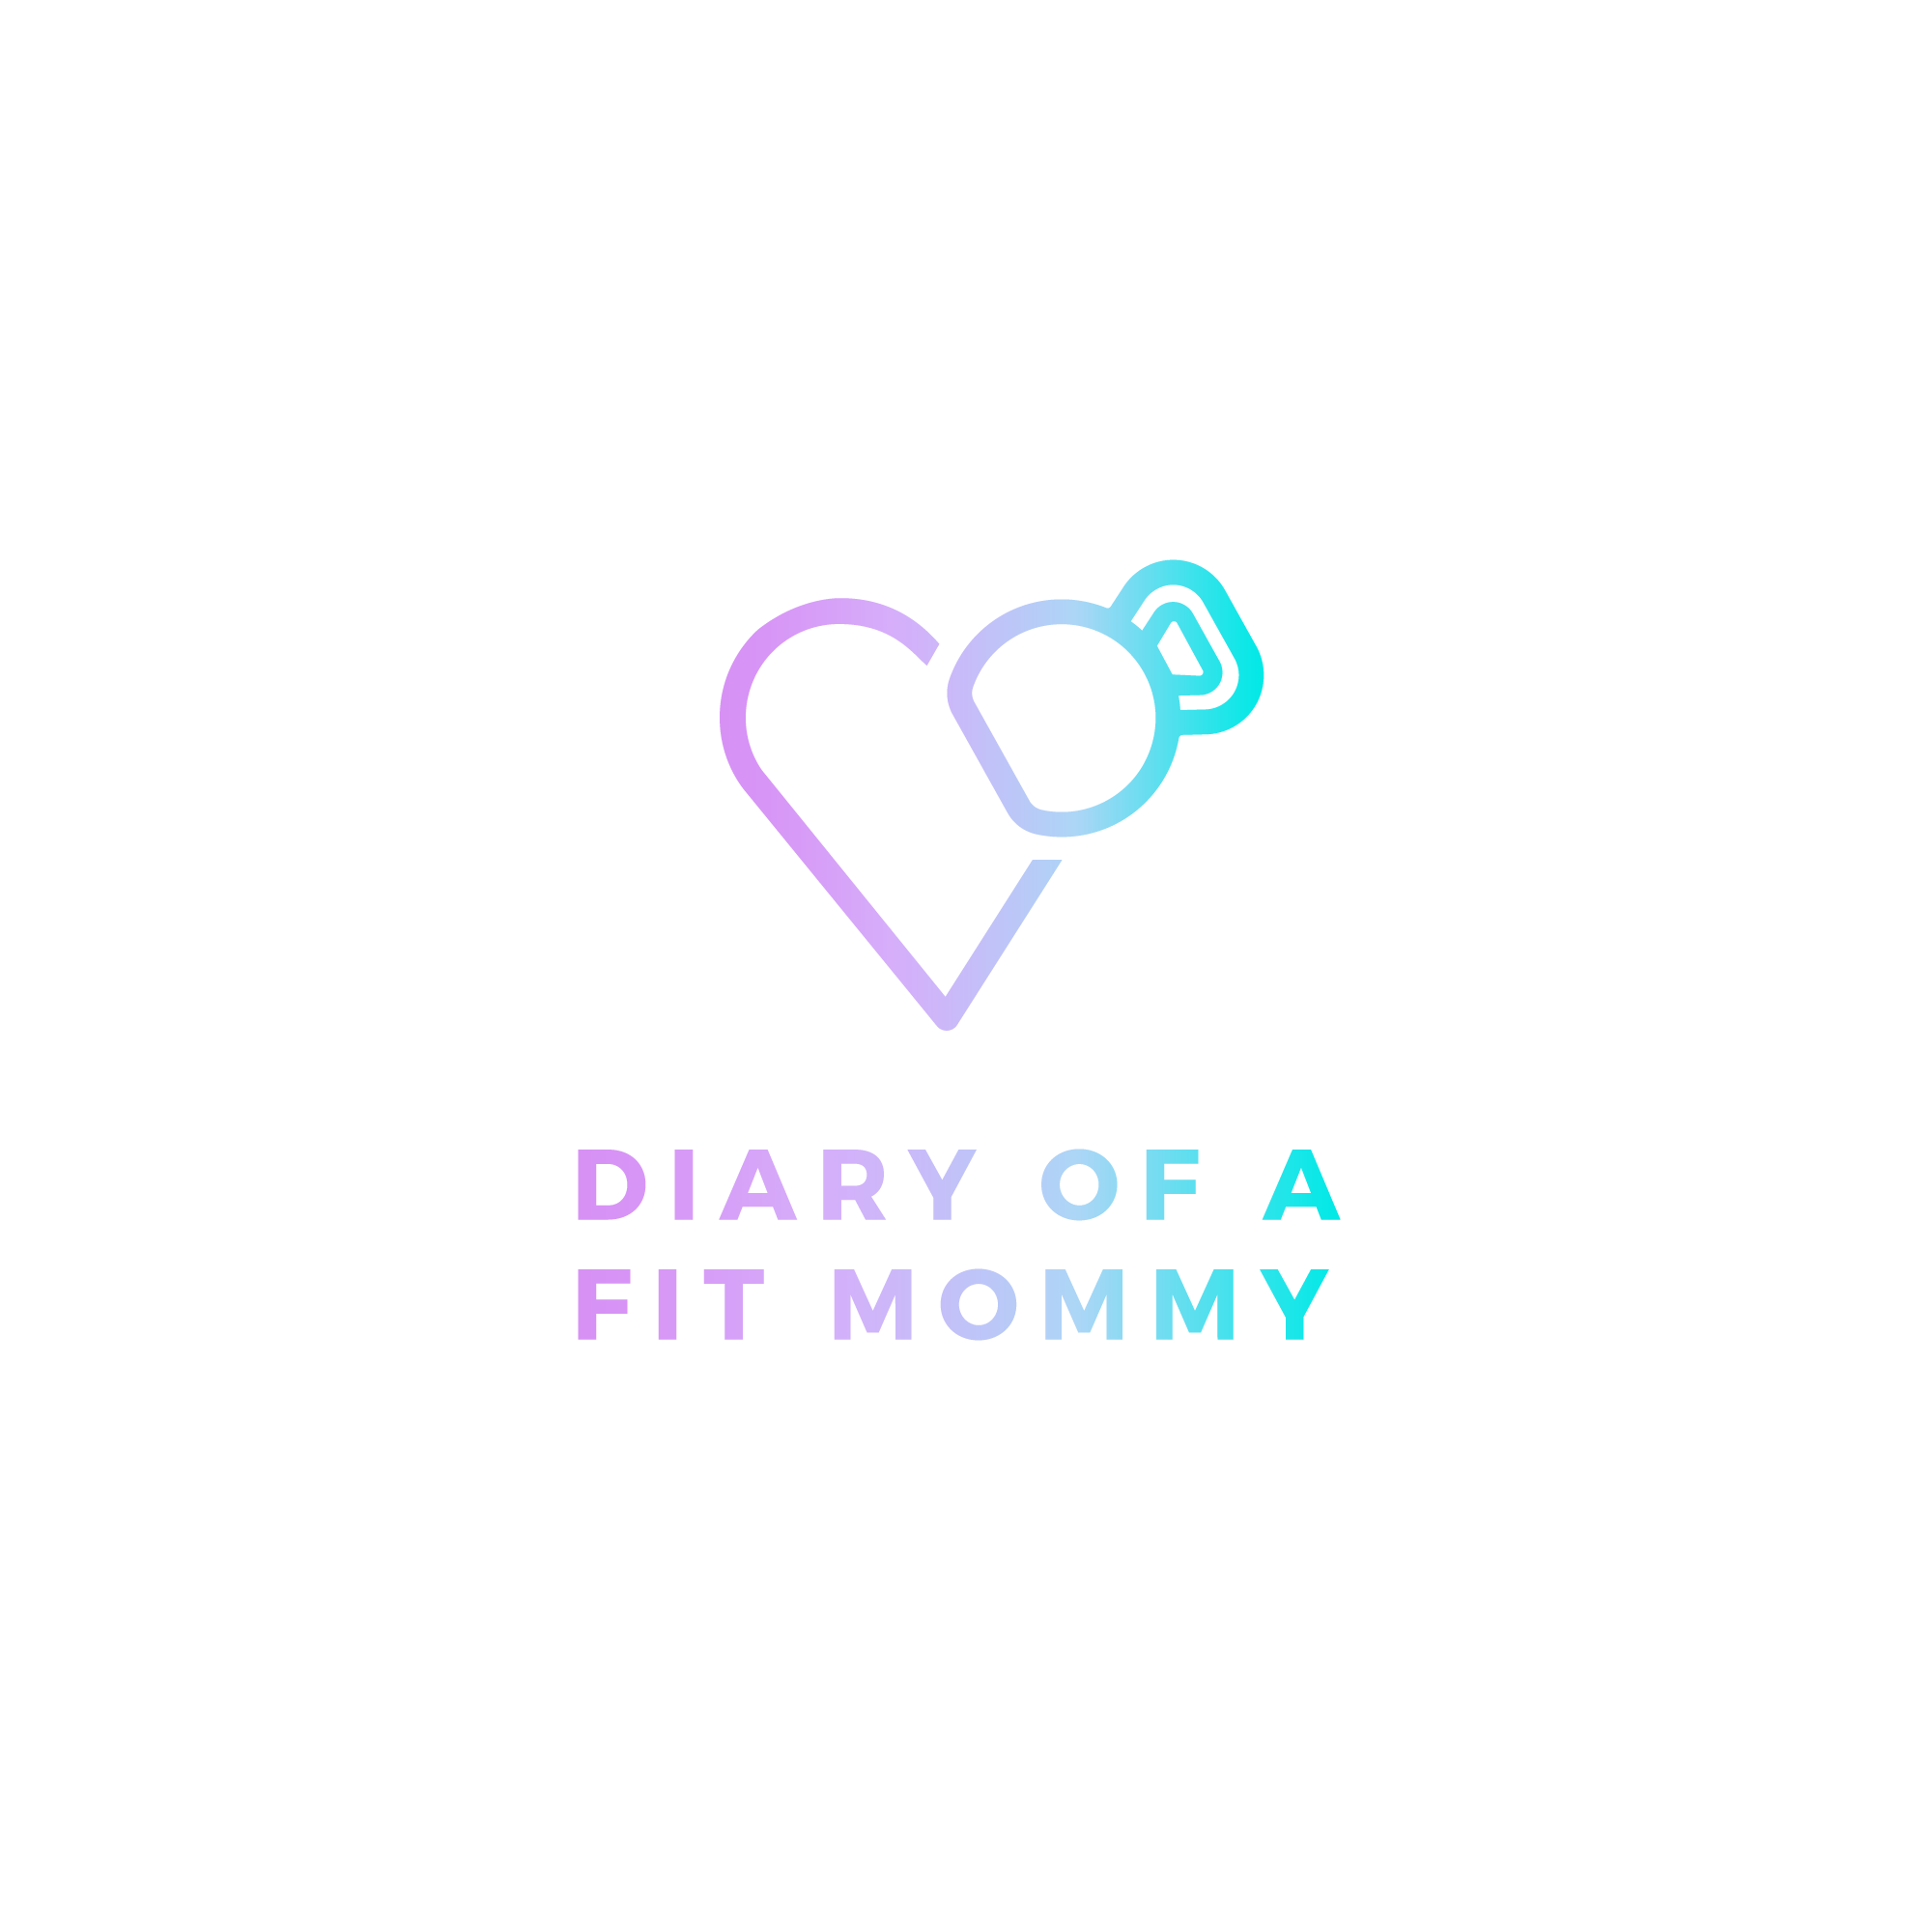 Diary of a Fit Mommy Logo